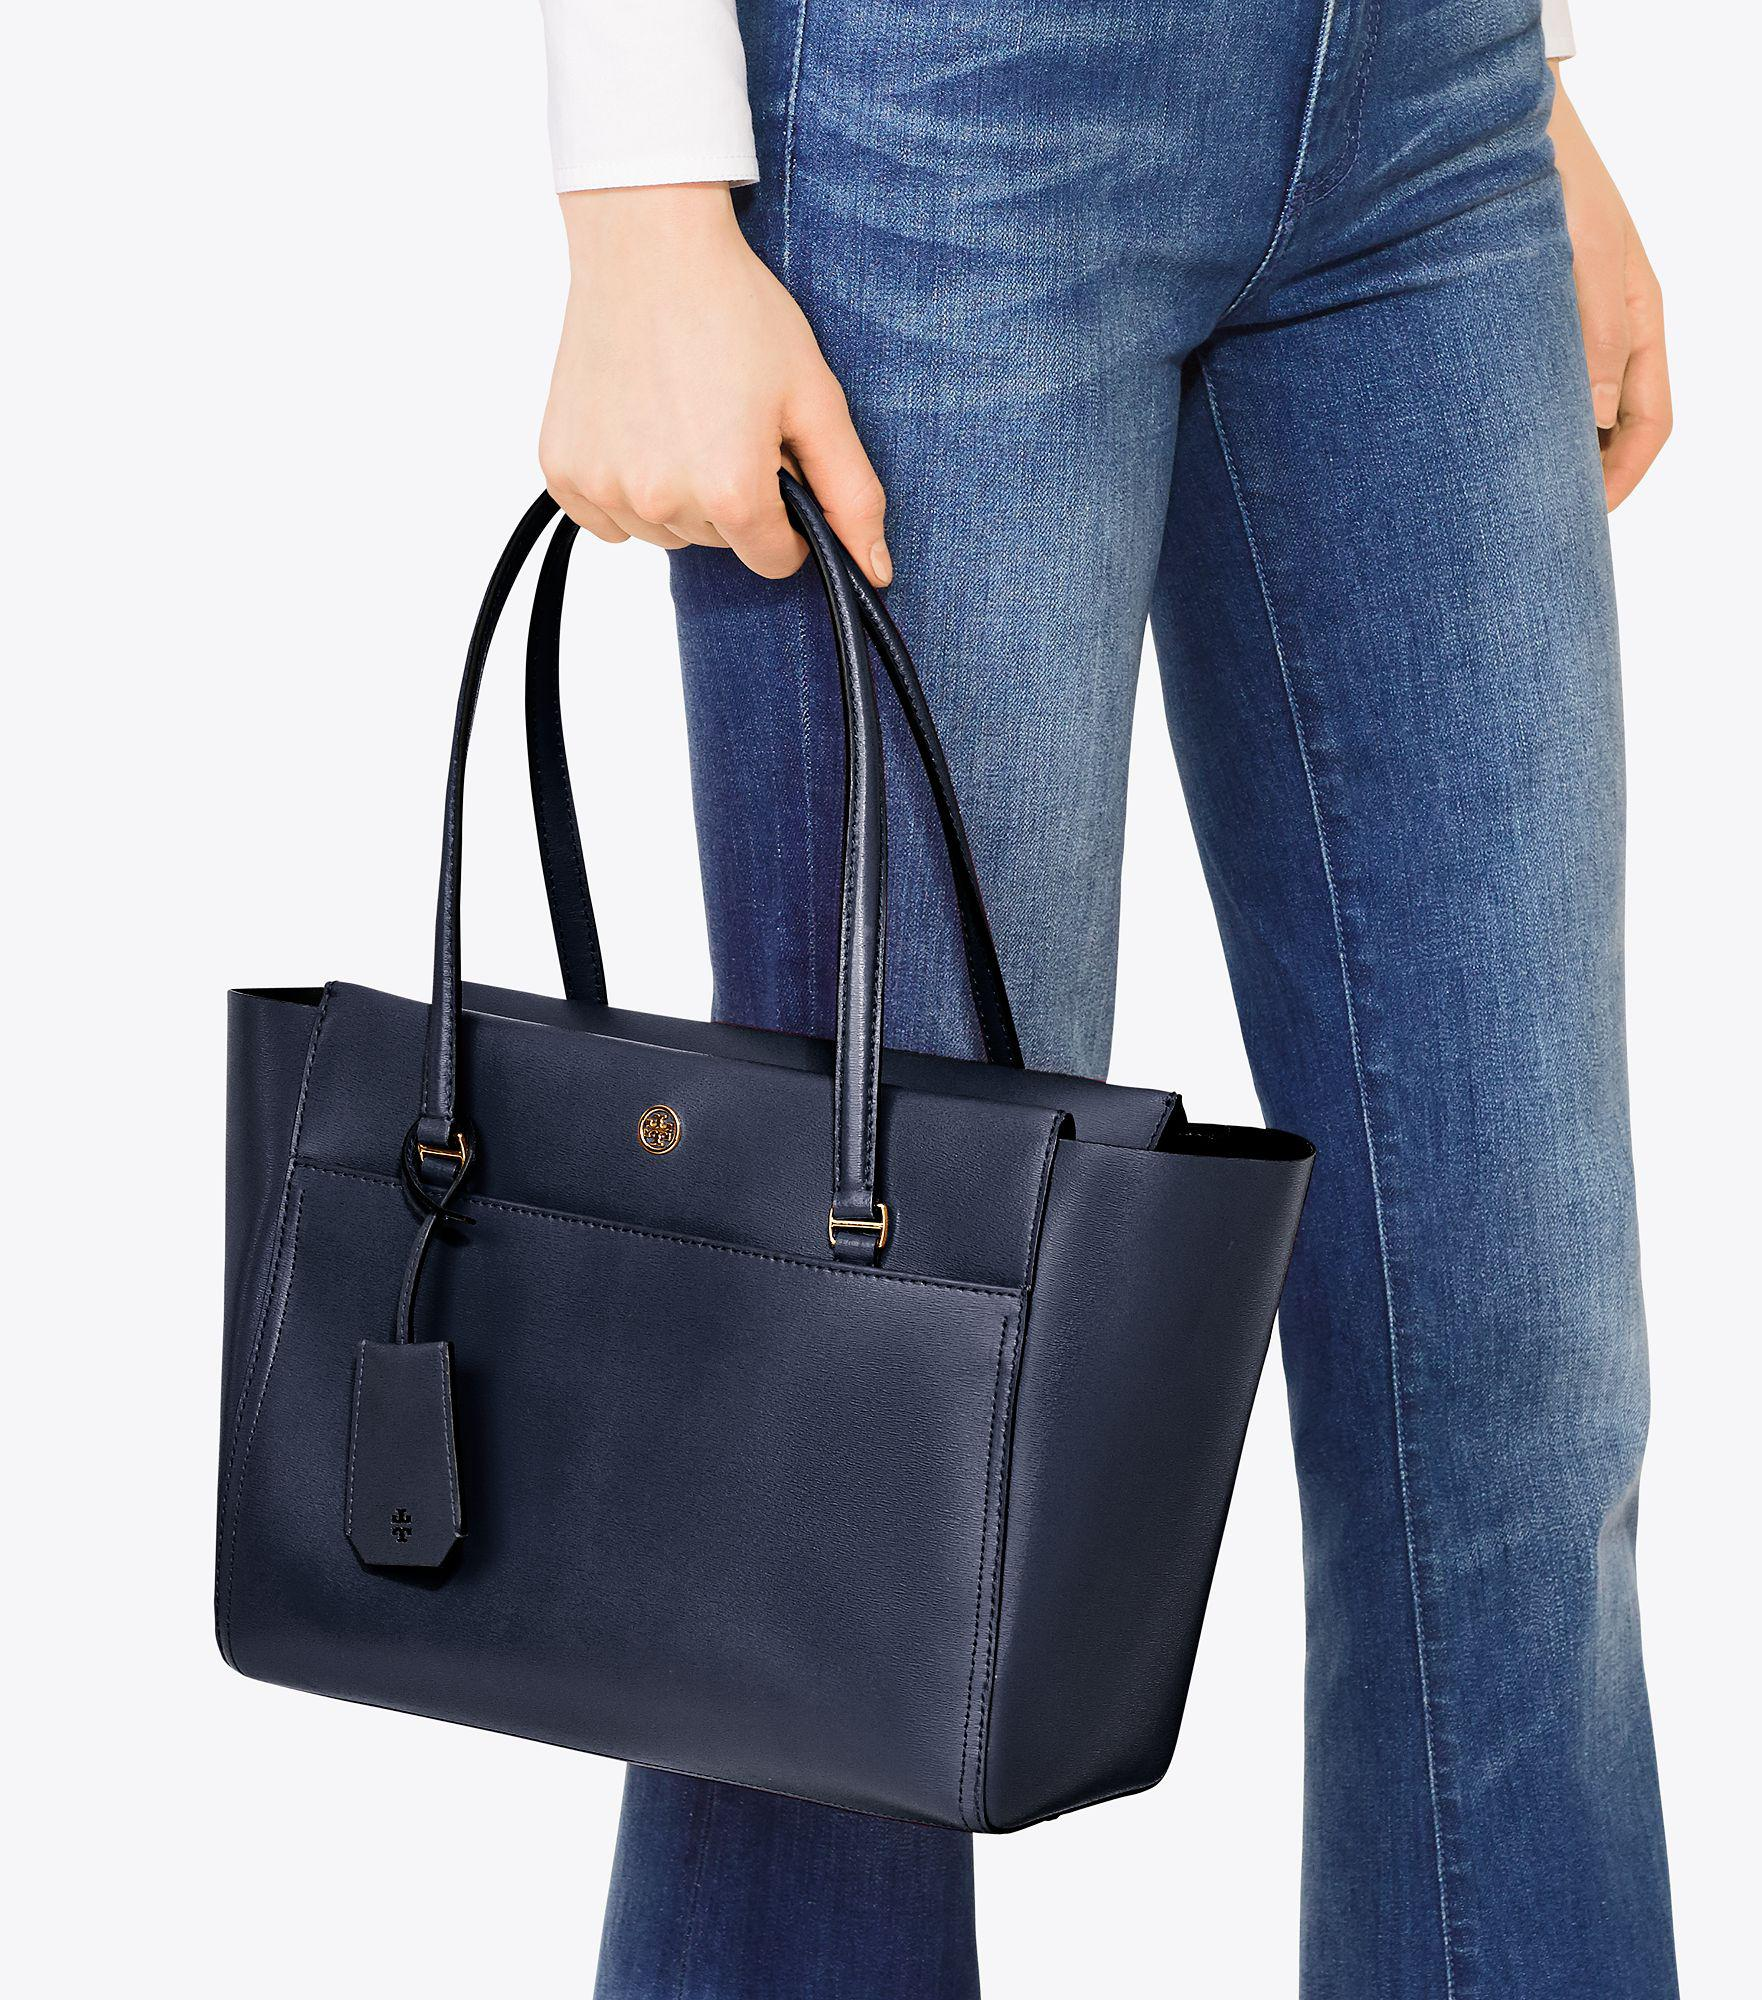 e9960706473 ... inexpensive lyst tory burch parker small tote in blue 84bd0 26ead